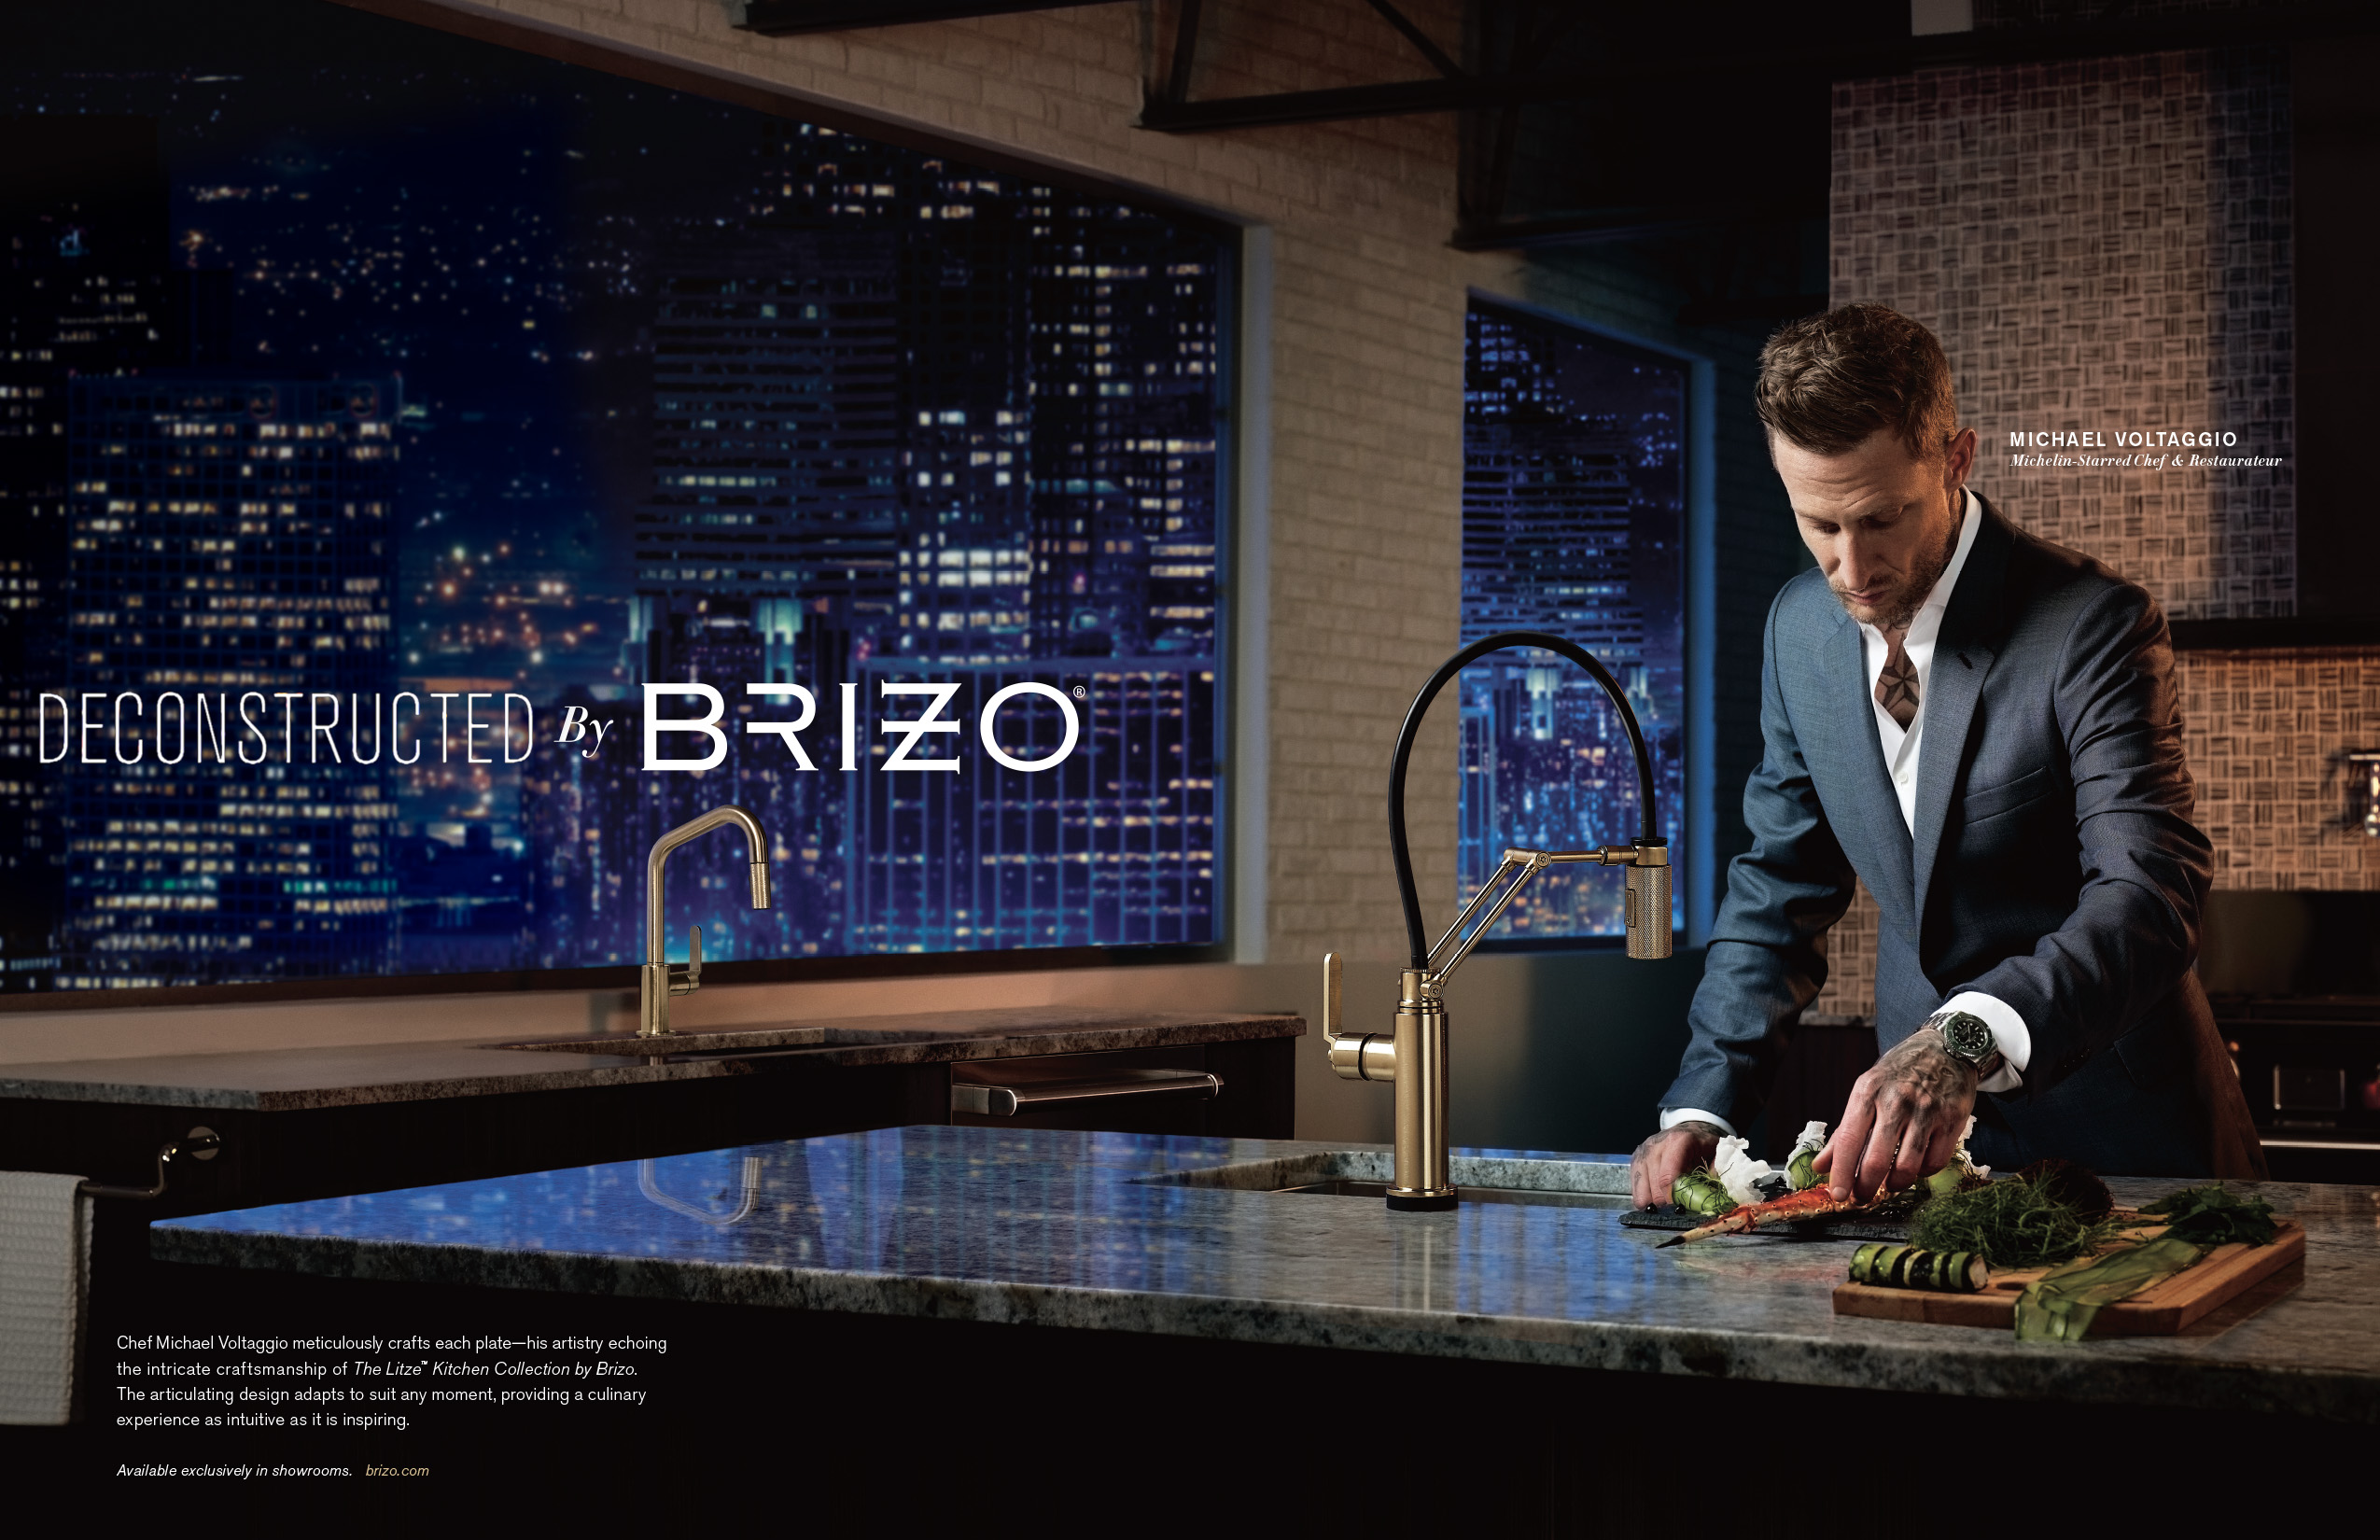 Brizo-michael-voltaggio-by-robert-ascroft-01